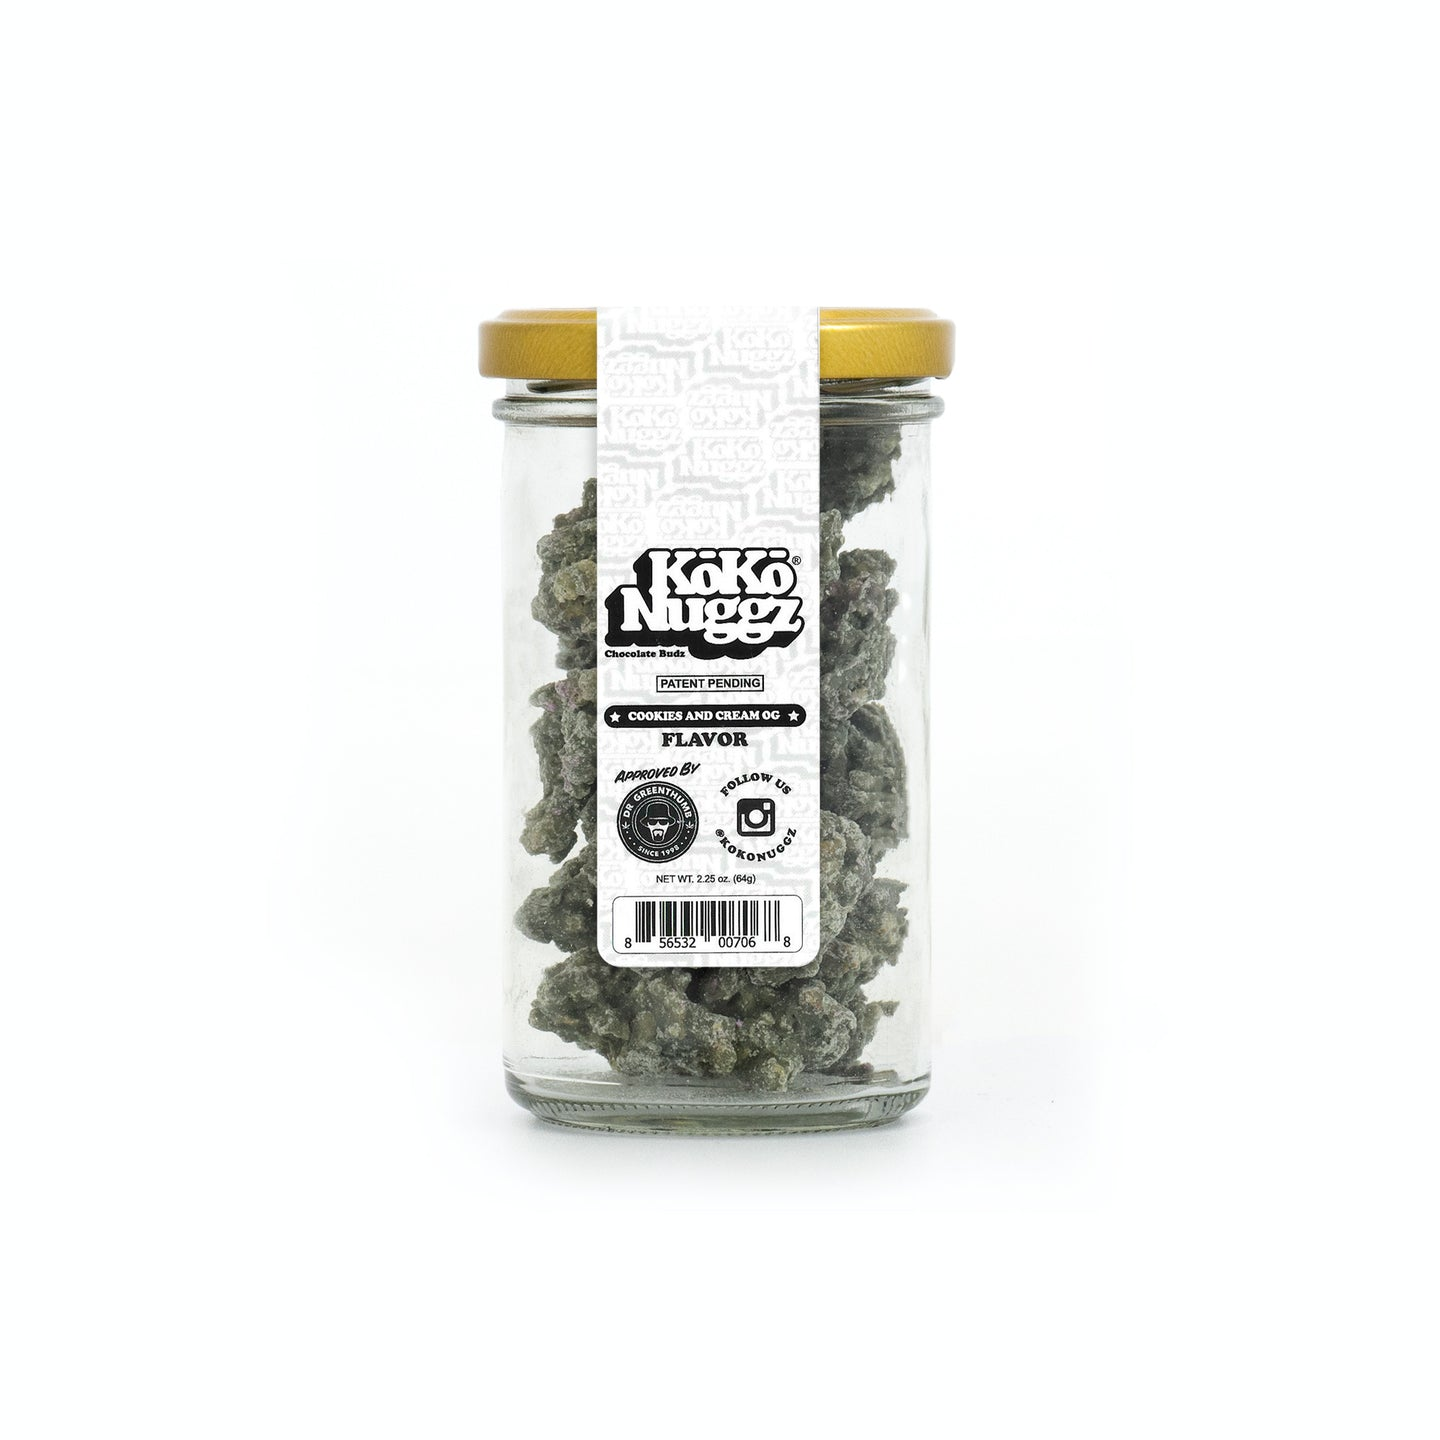 Cookies & Cream Flavour 2.25oz - Koko Nuggz Europe